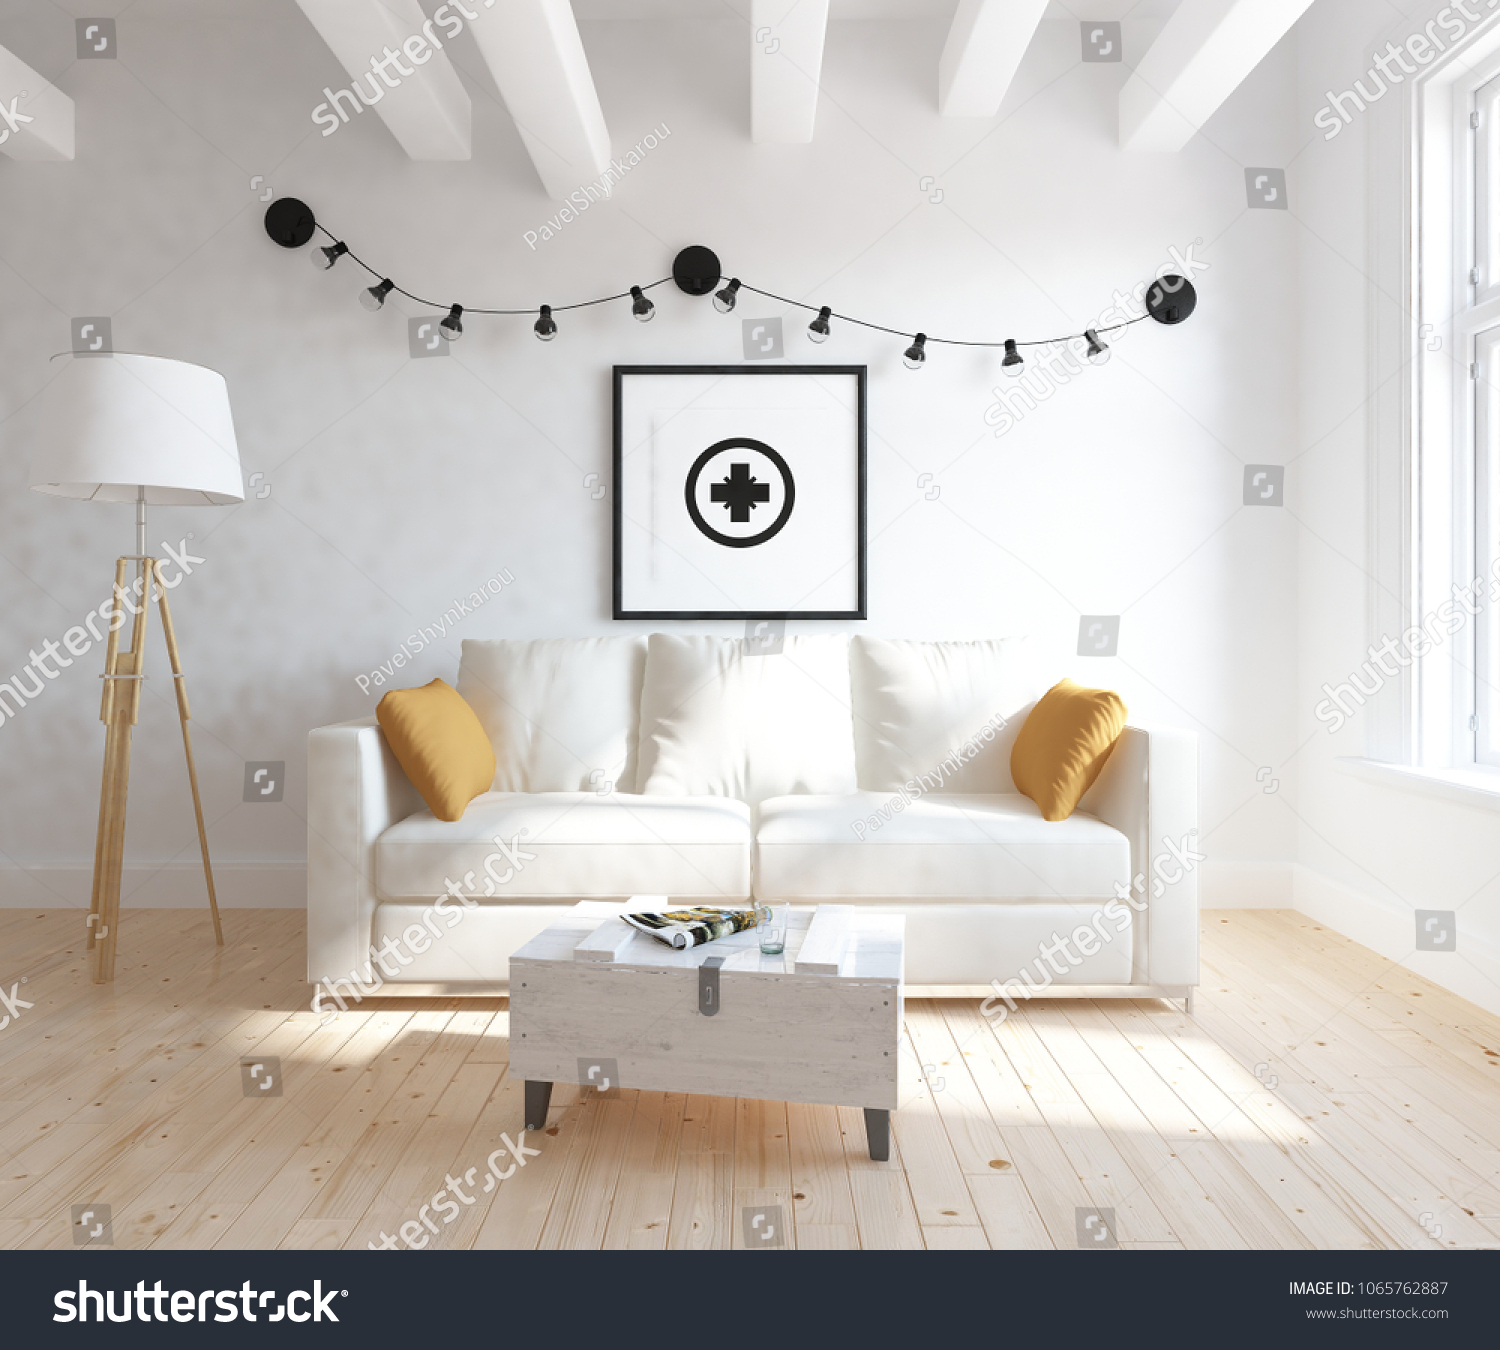 Idea Of A White Scandinavian Room Interior With Sofa, Table On The Wooden  Floor And